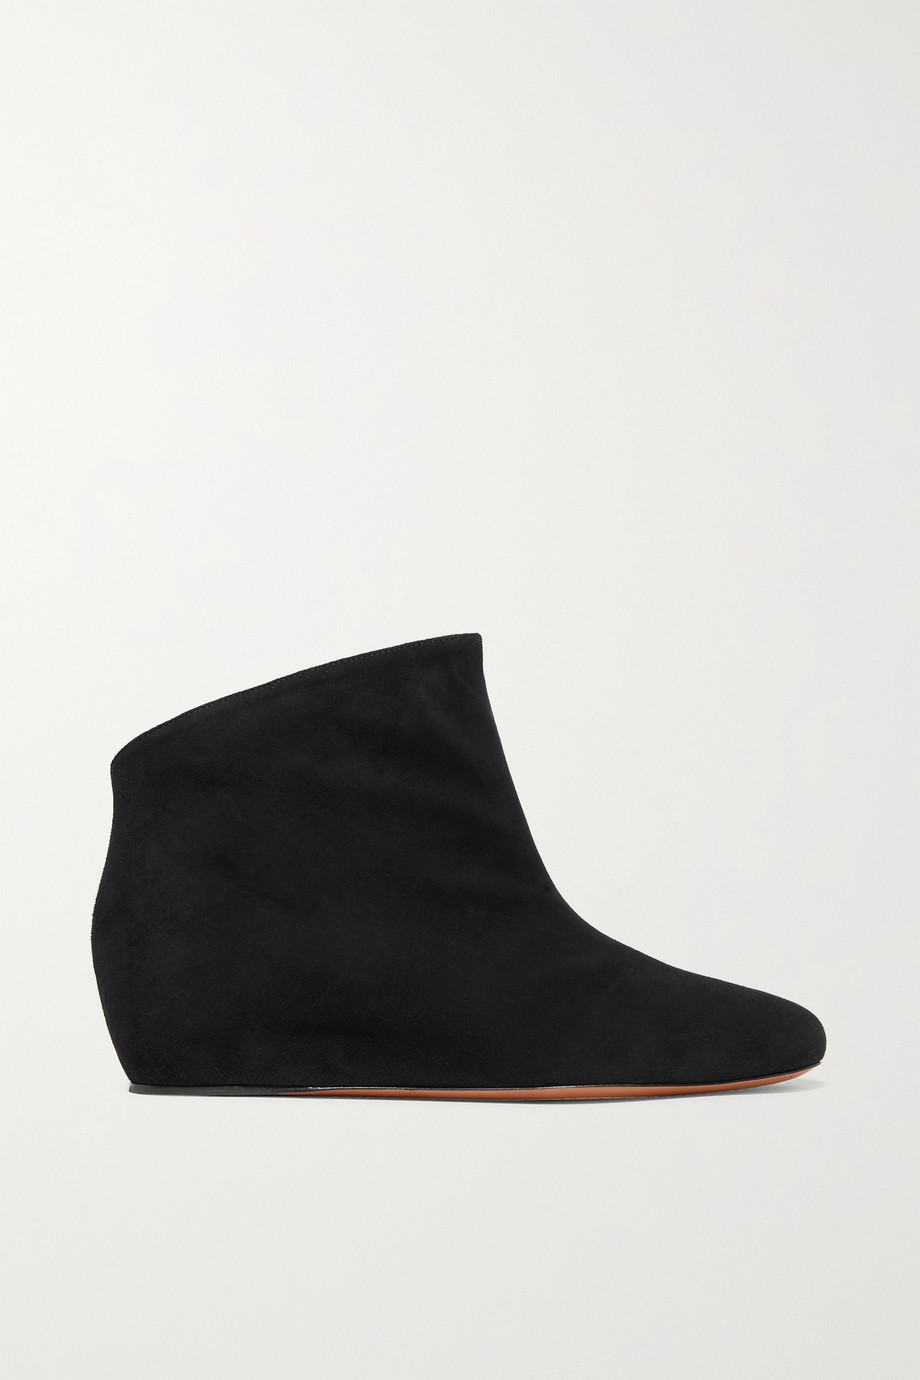 Alaïa 35 suede wedge ankle boots